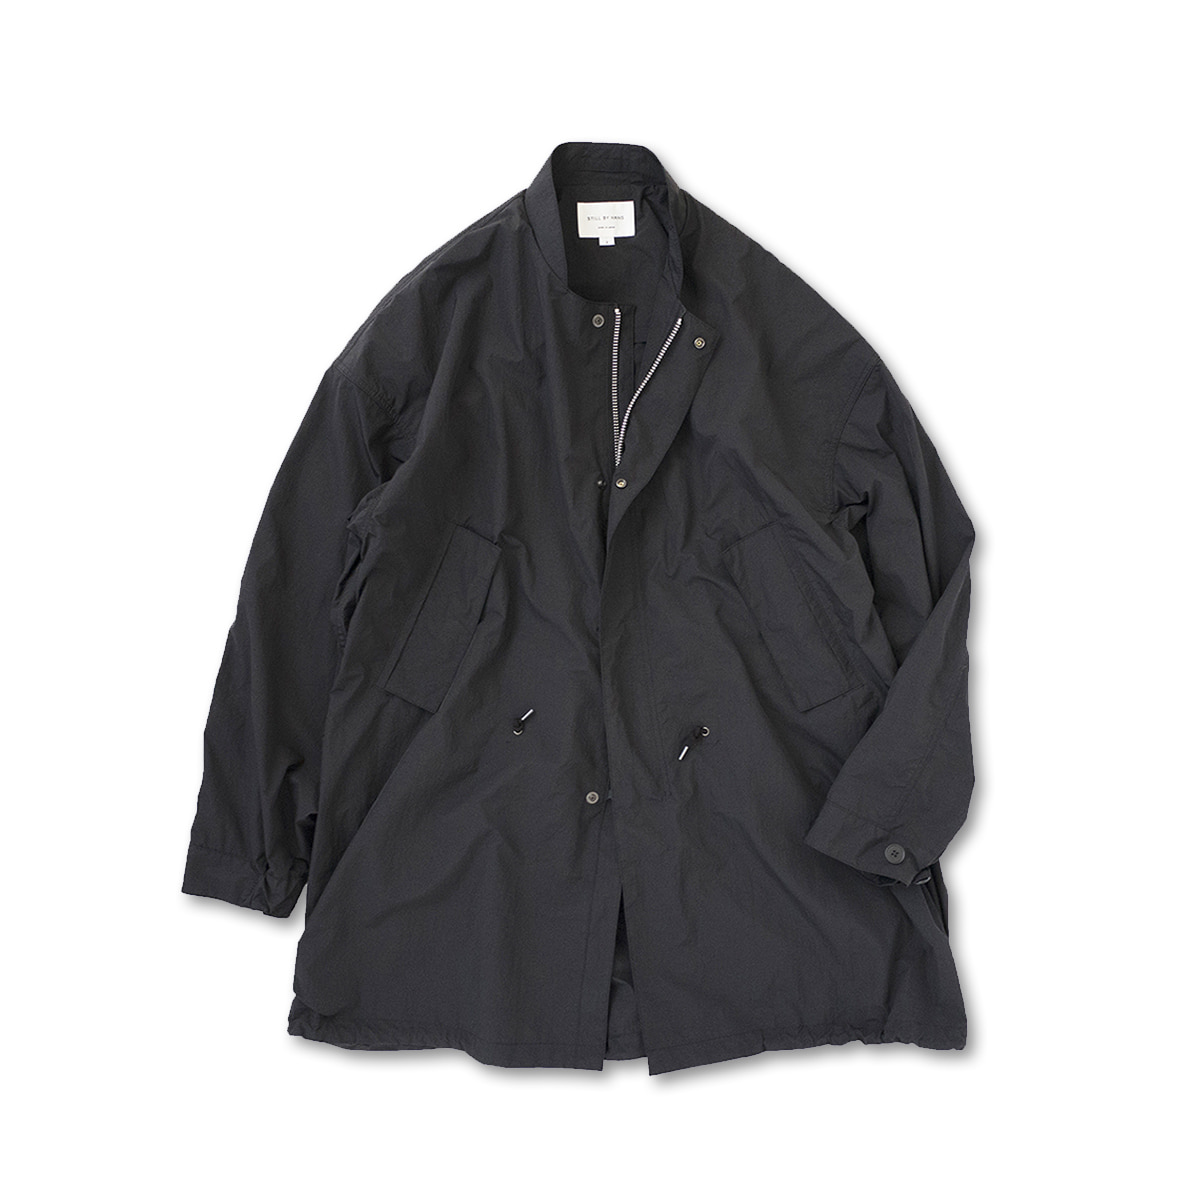 [STILL BY HAND] CO03201OS - CRISP NYLON COAT 'BLACK'